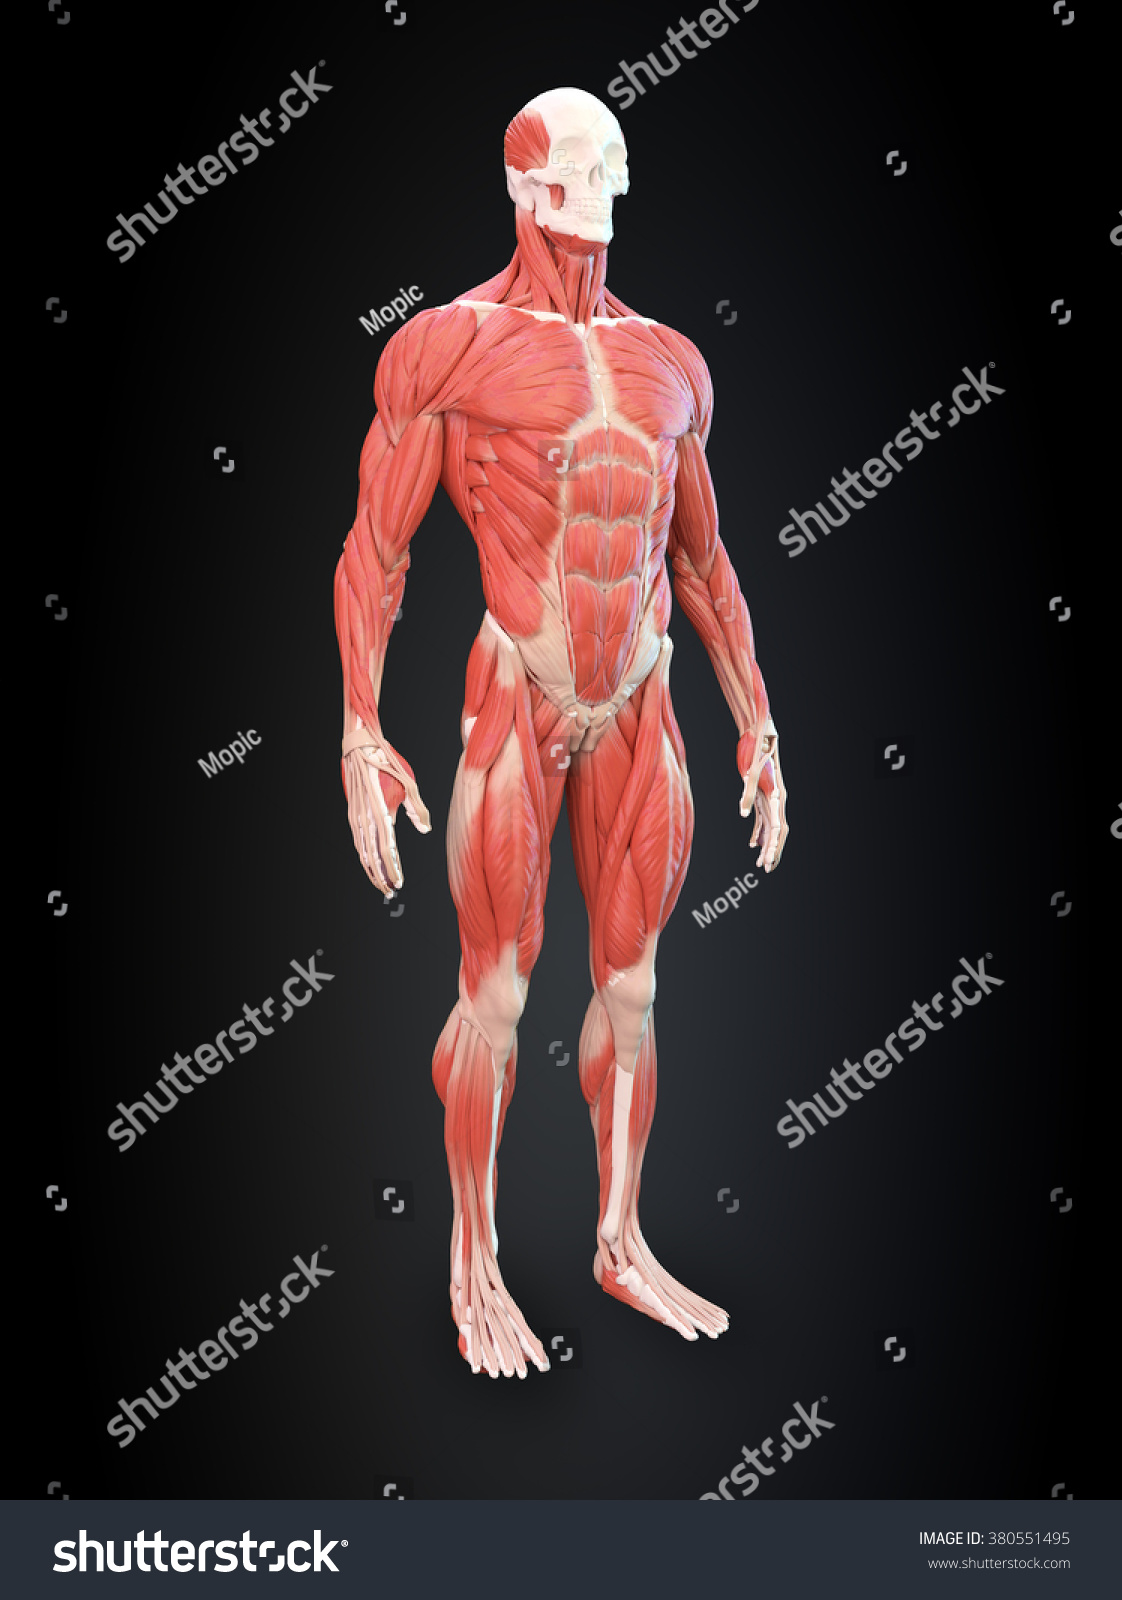 Detailed Muscle Human Anatomy Illustration Stock Illustration